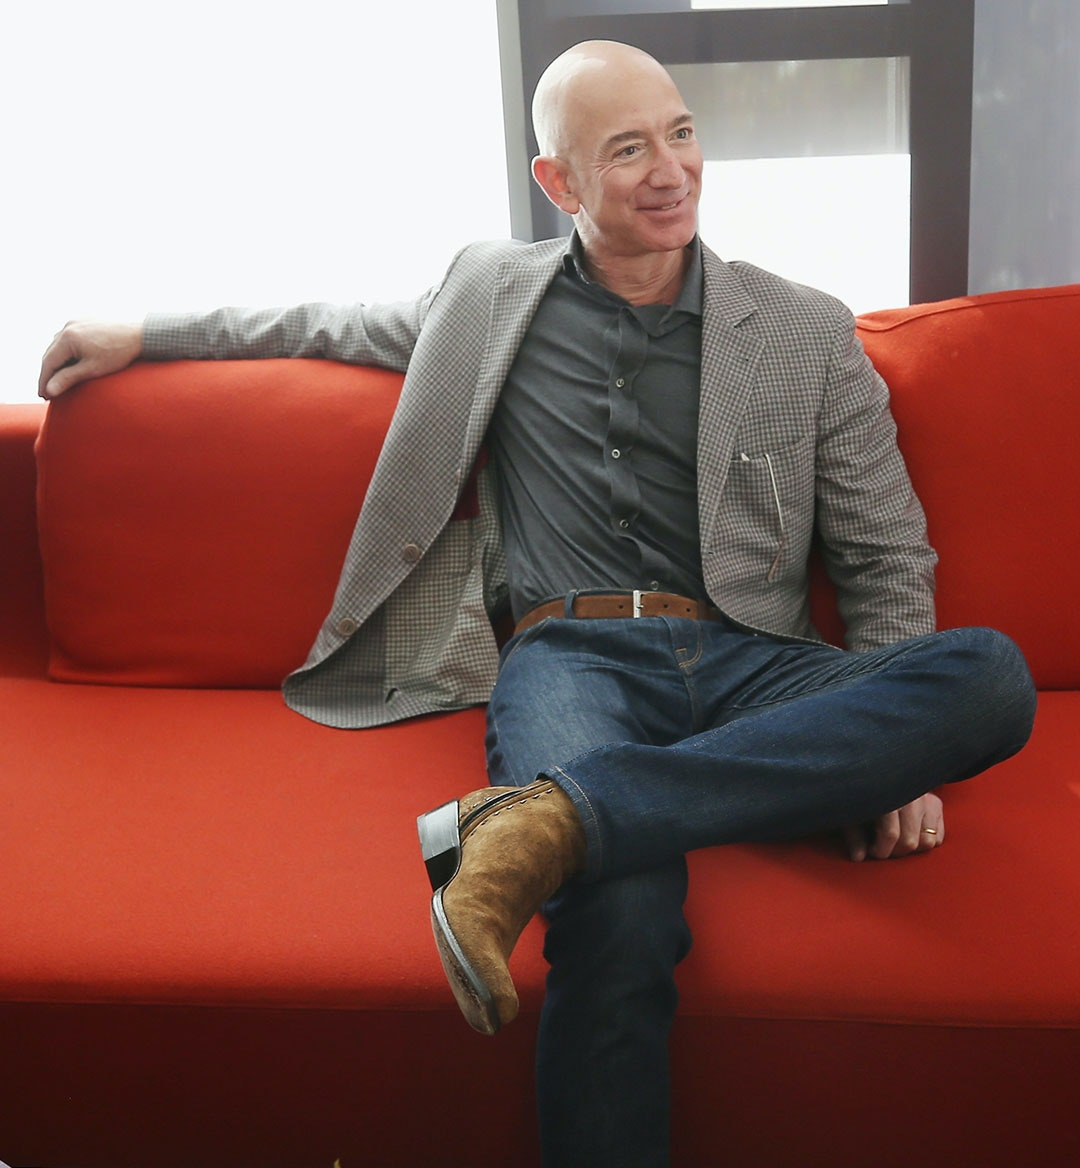 Jeff Bezos Mobile Hero Imaeg 1080x1168 0